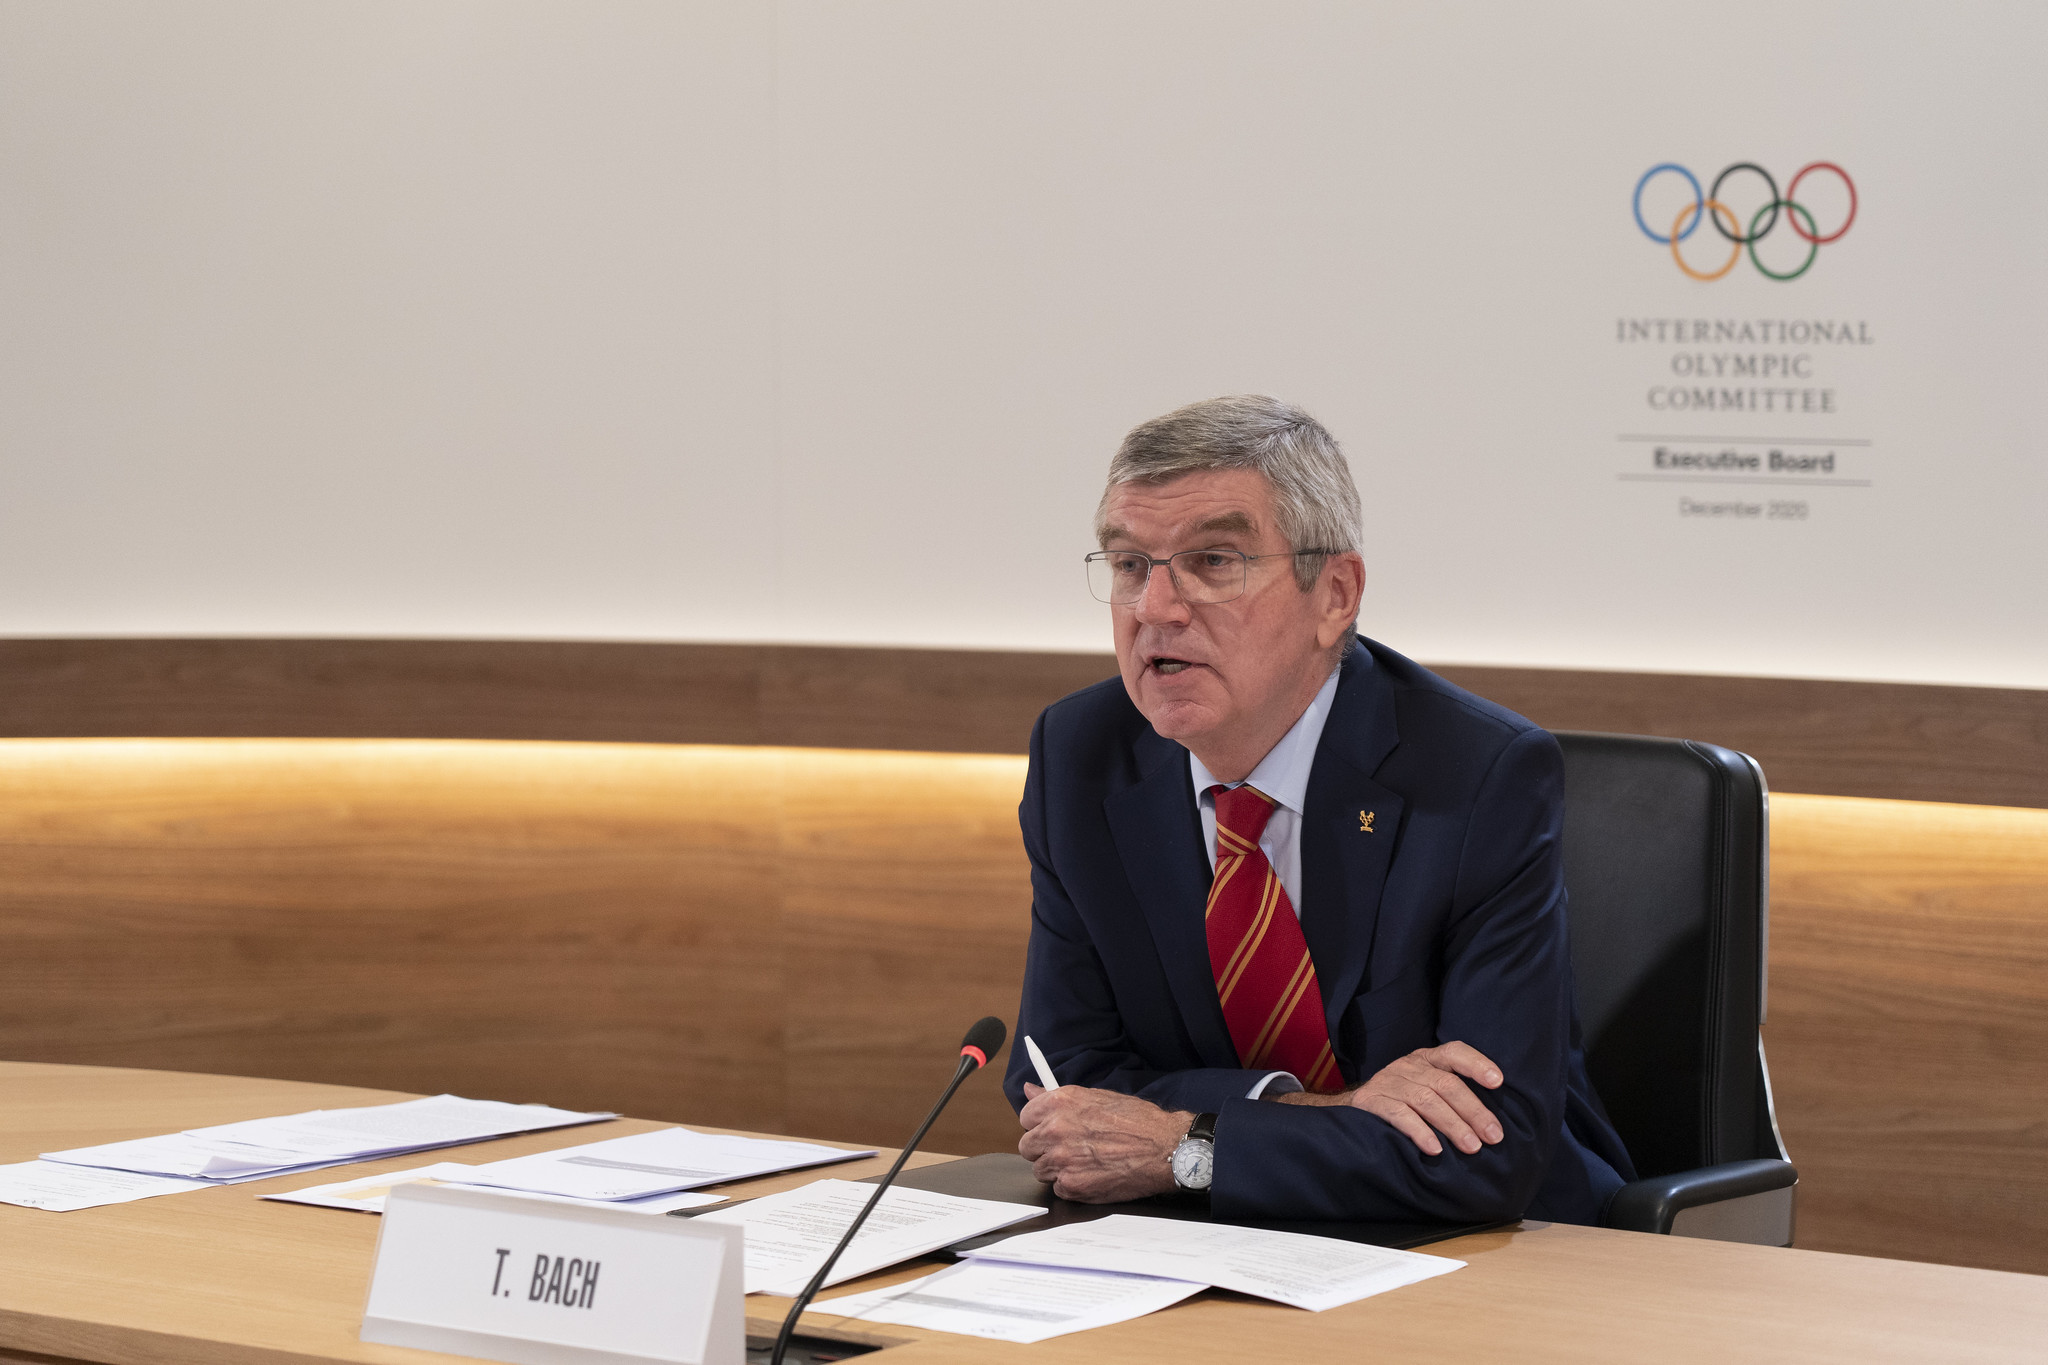 """AIBA """"well aware"""" of IOC concerns with Presidential candidates, claims Bach"""